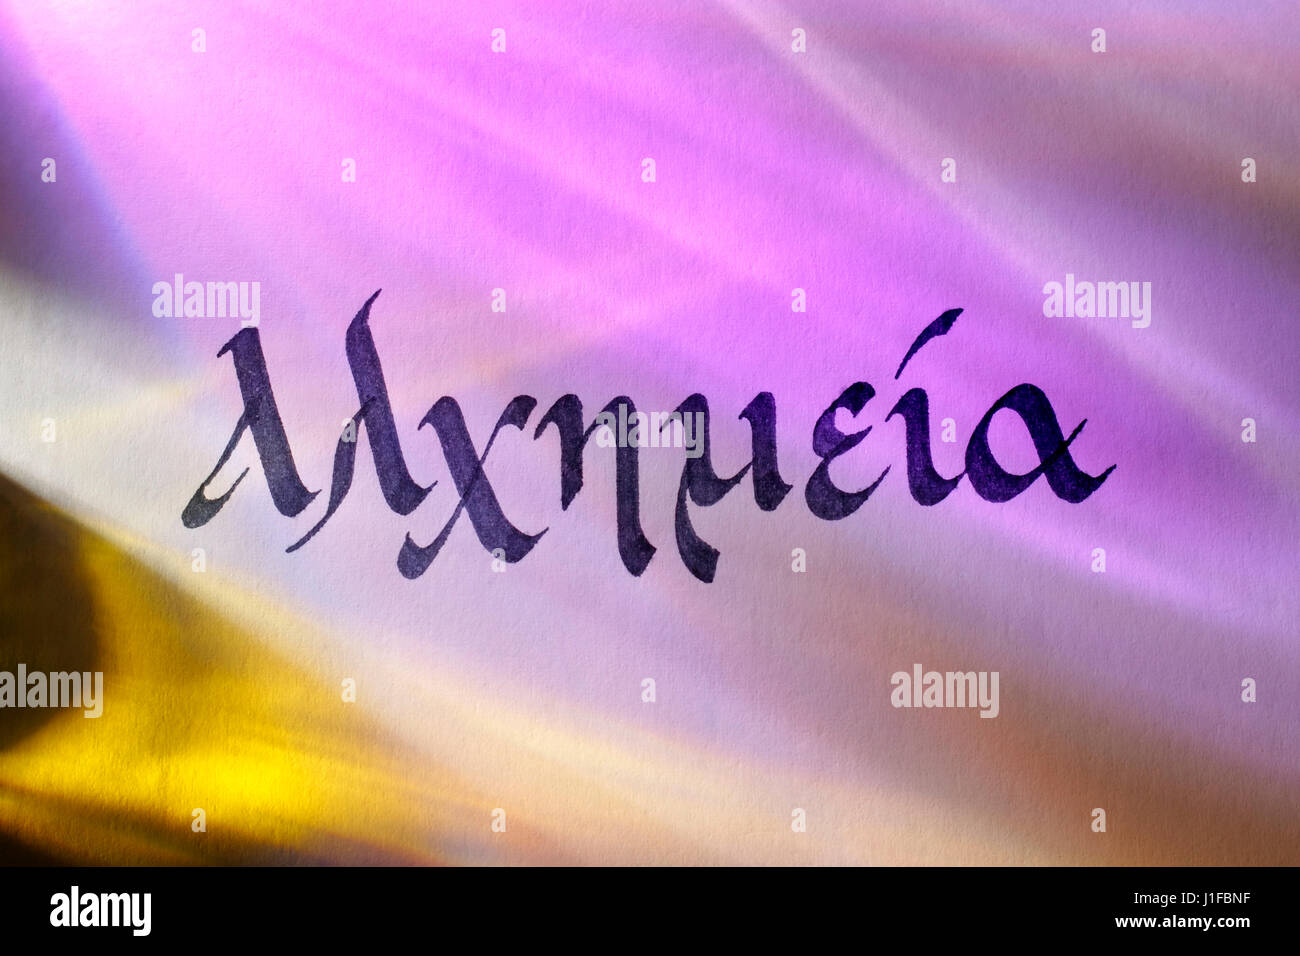 Handwritten word alchemy in greek script under colored lights. Greek language. - Stock Image